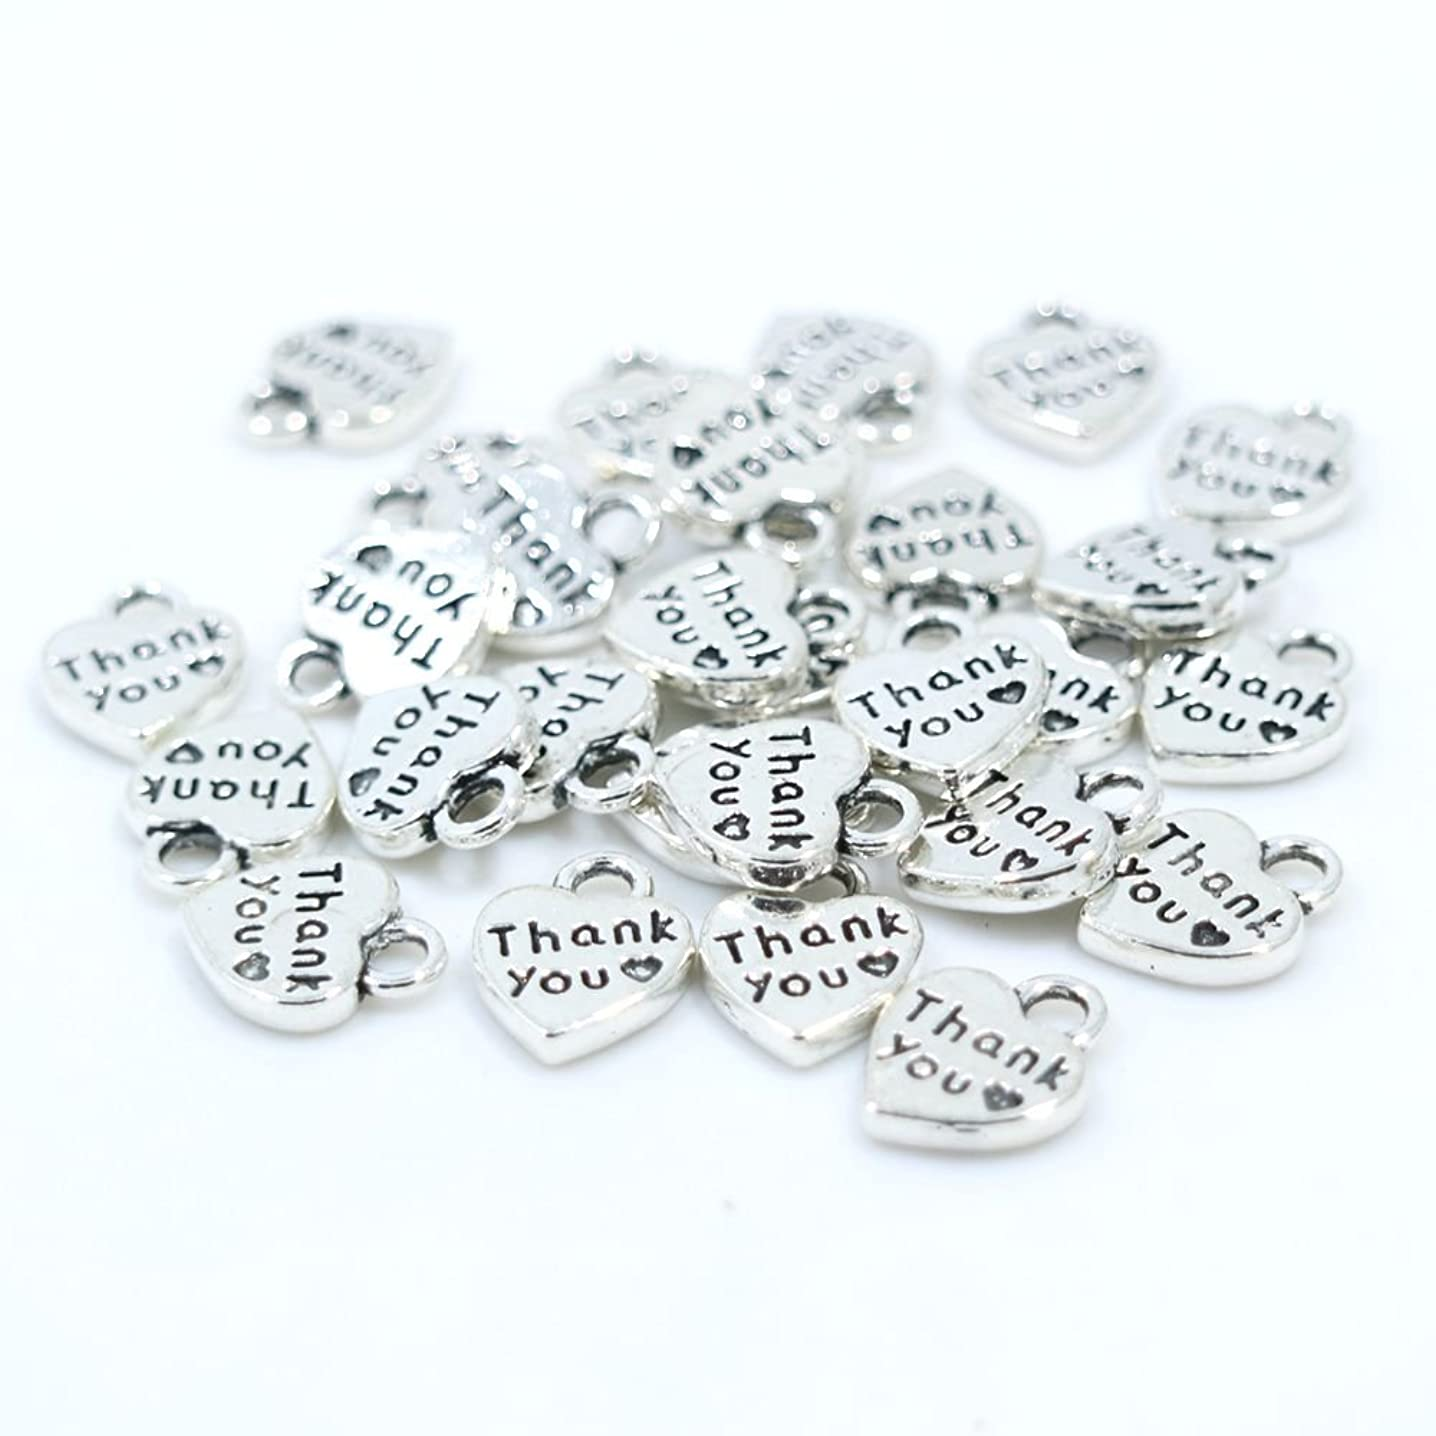 lisafinding 100pcs Vintage Silver Thank You Heart Shape Charms Pendant, DIY Crafts, Jewelry Making Charms Pendant (Antiqued Silver)